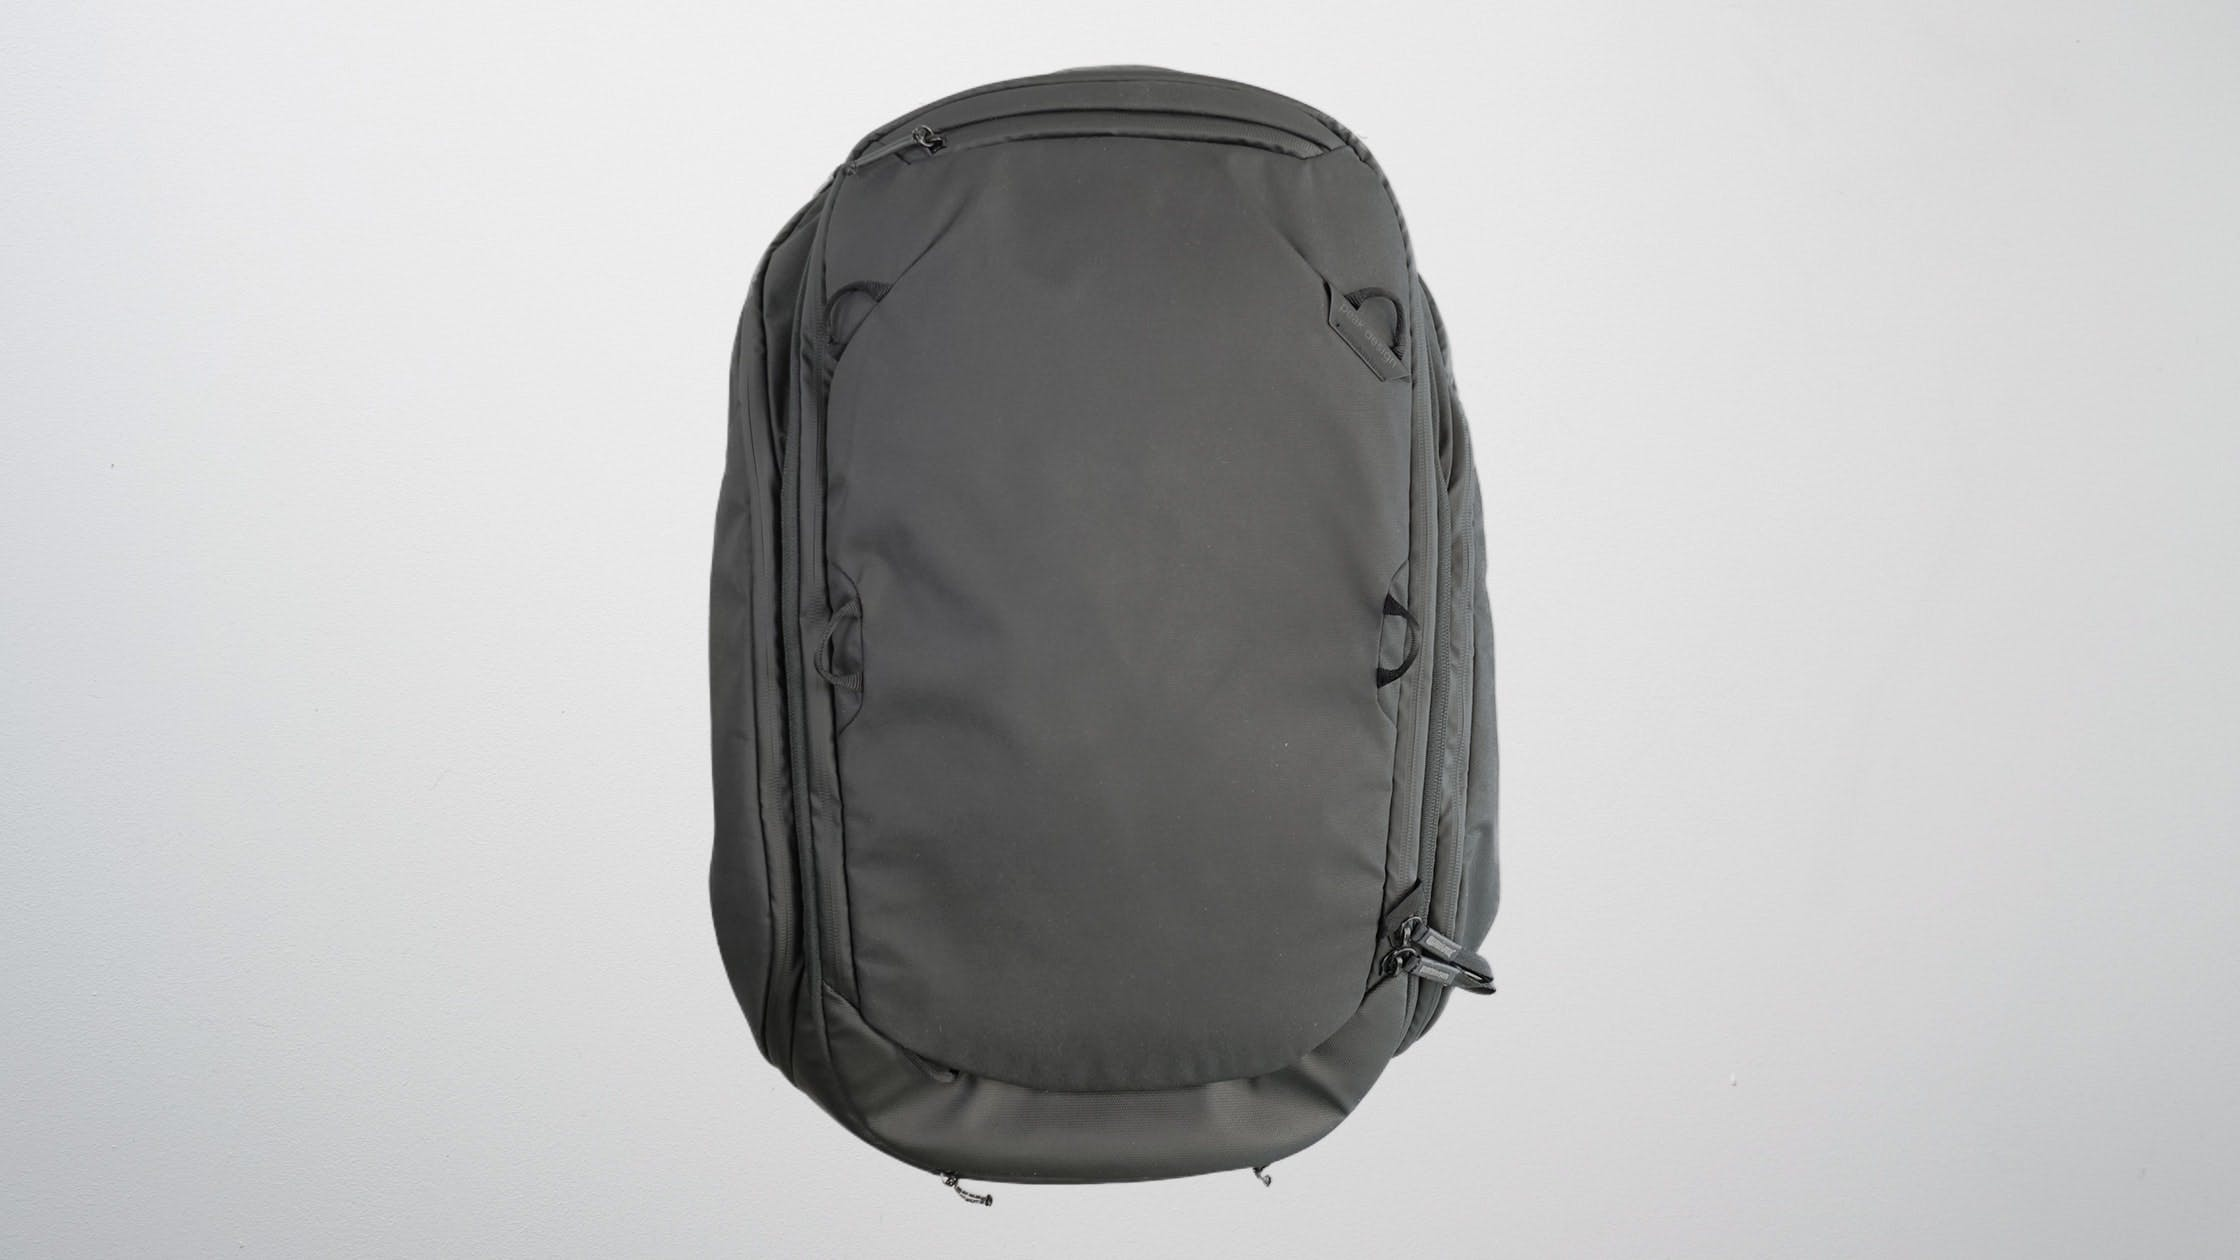 22130d9a8076 Peak Design Travel Backpack Review. Peak Design Travel Backpack. 8.9. The  ...